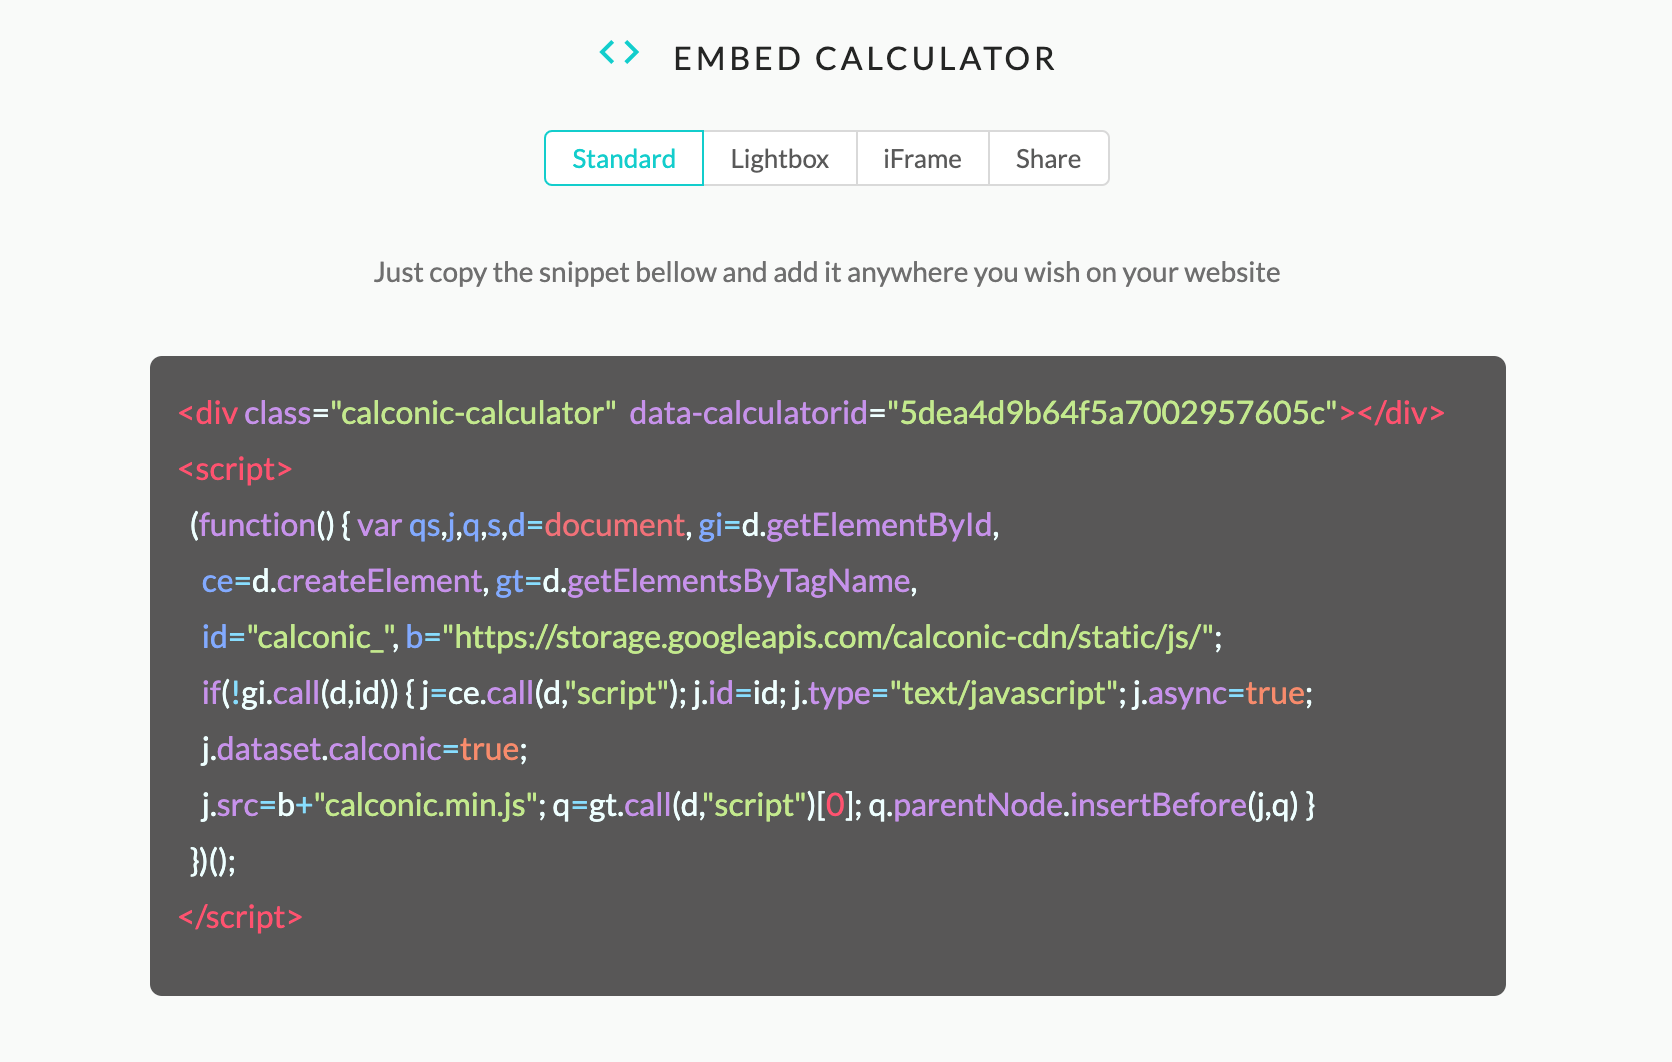 calconic calculator creation add to website code